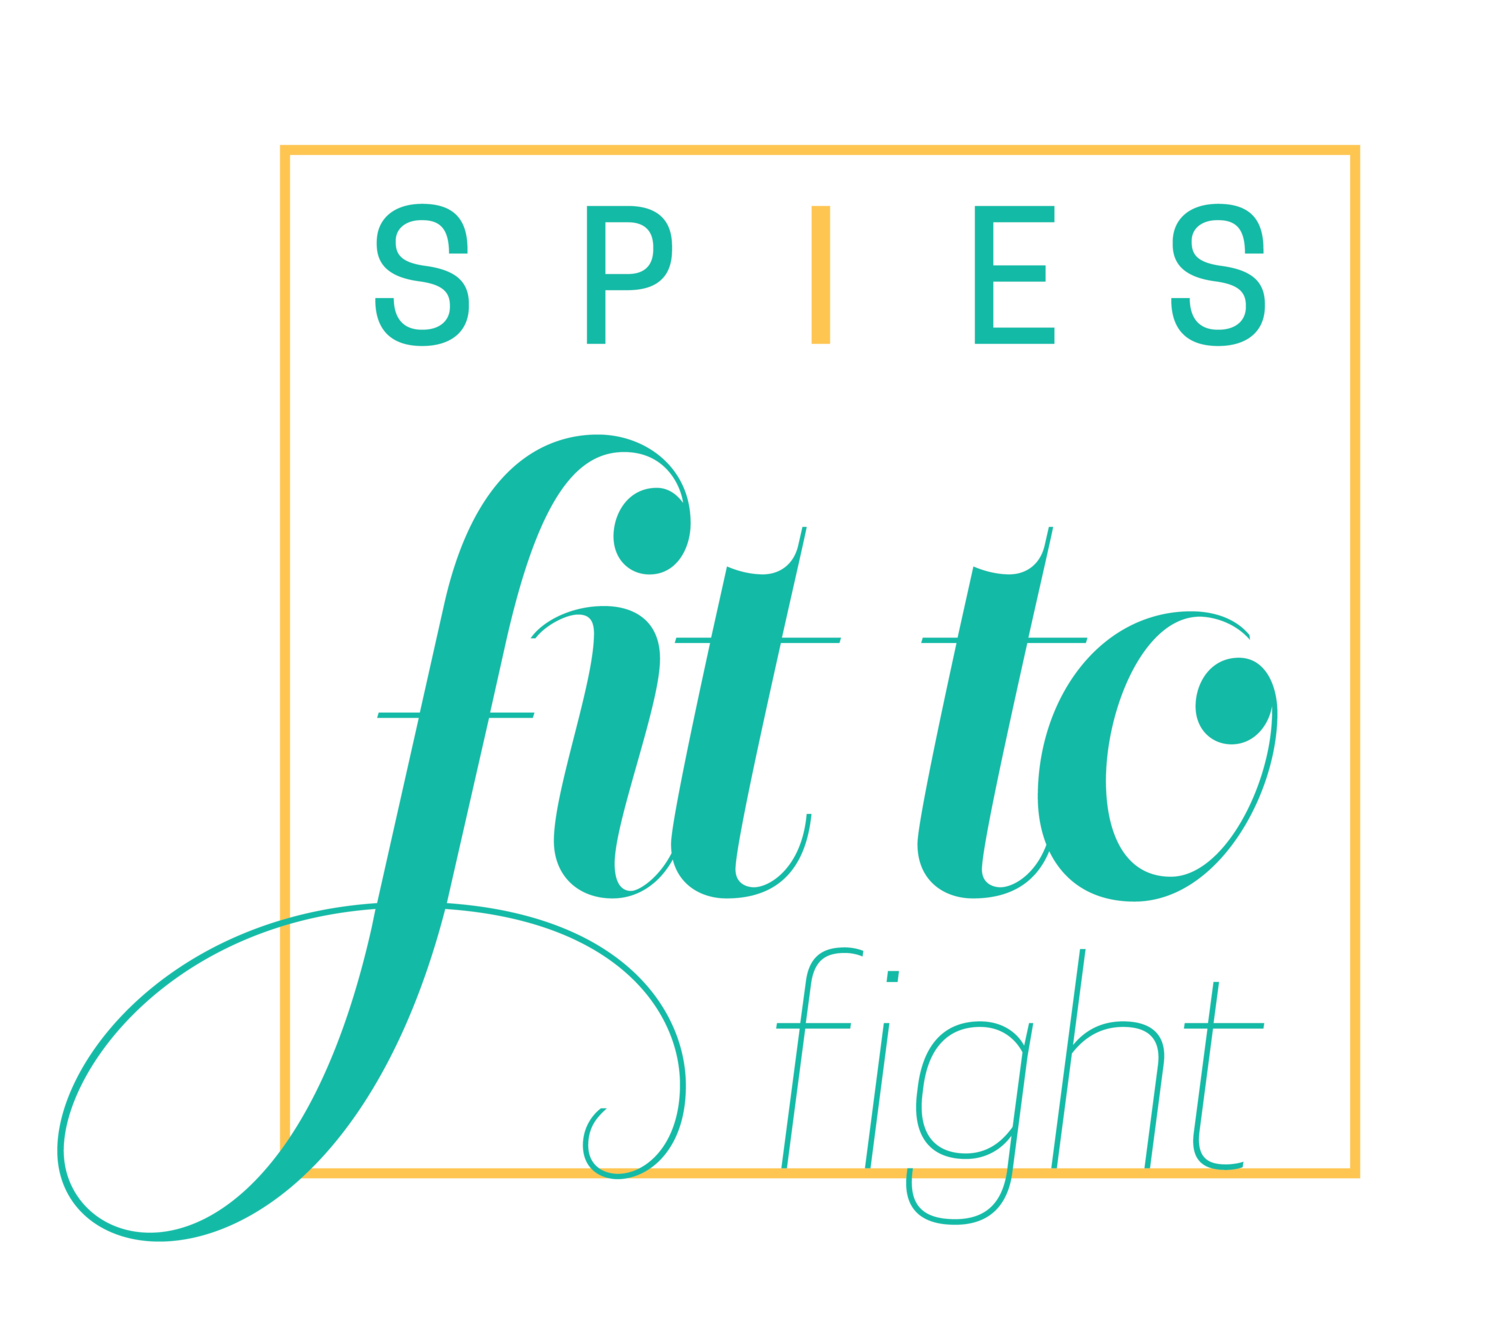 why you need to set goals and how to be proud of your spiesfittofight